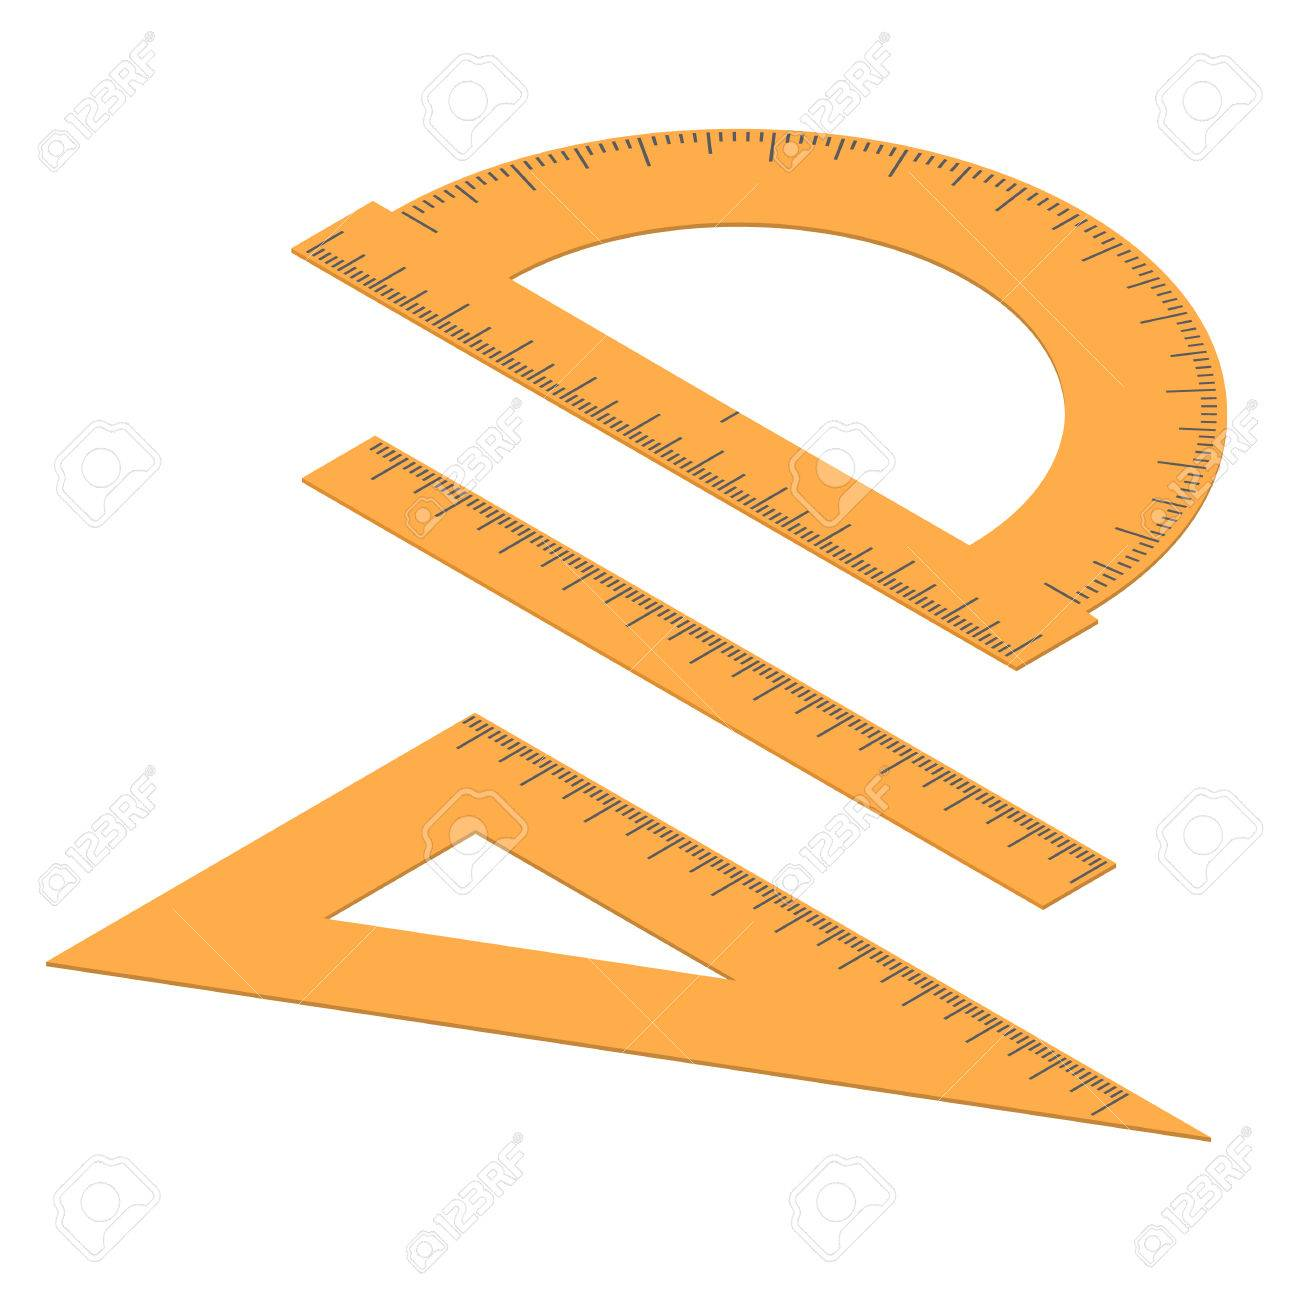 Set of lines  Straight and angular ruler and protractor  Tool